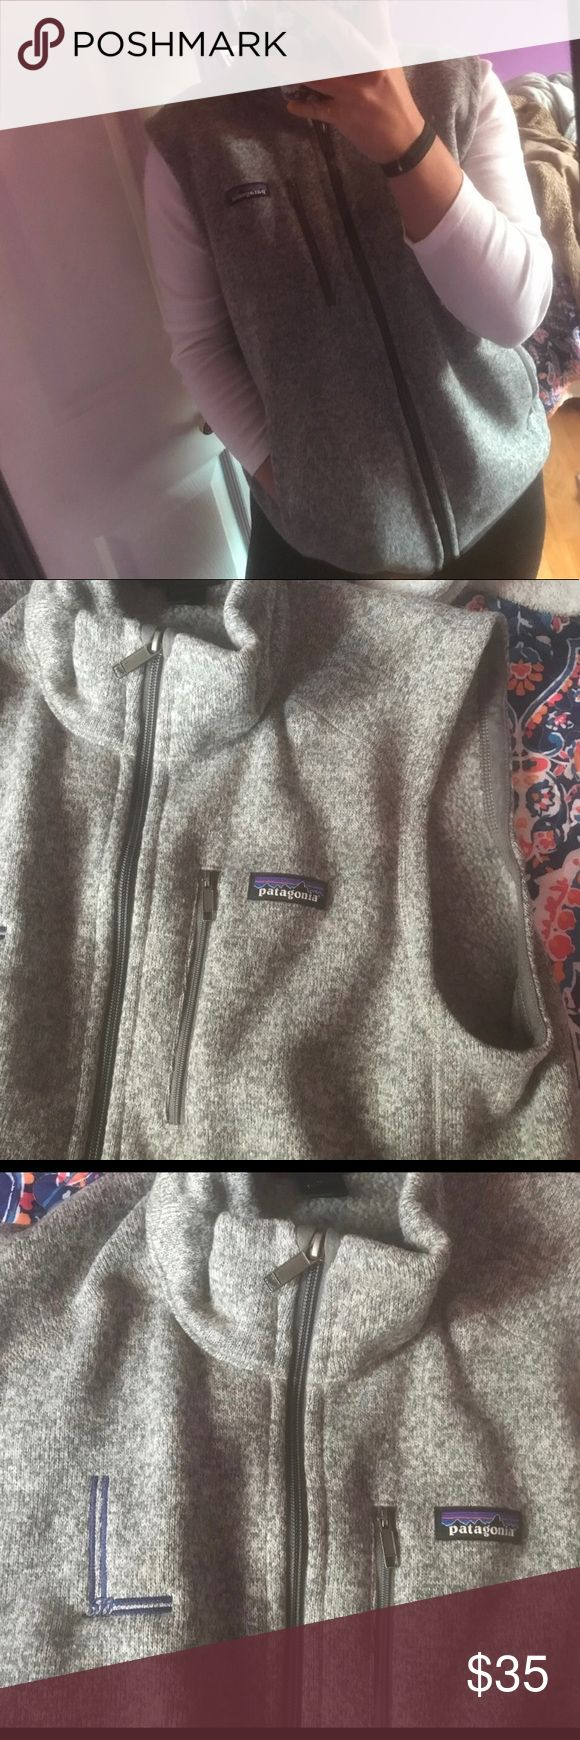 Patagonia vest perfect condition Patagonia vest! it has a small hole in it from when i tried to get the embroidery off but it's fixable!! It's so soft and cozy, it's too big on me unfortunately. Women's. BEFORE YOU BUY:  I ship out day after purchase  NO TRADES OR PAYPAL 10% off bundles  Please use offer button for reasonable negotiations Patagonia Jackets & Coats Vests